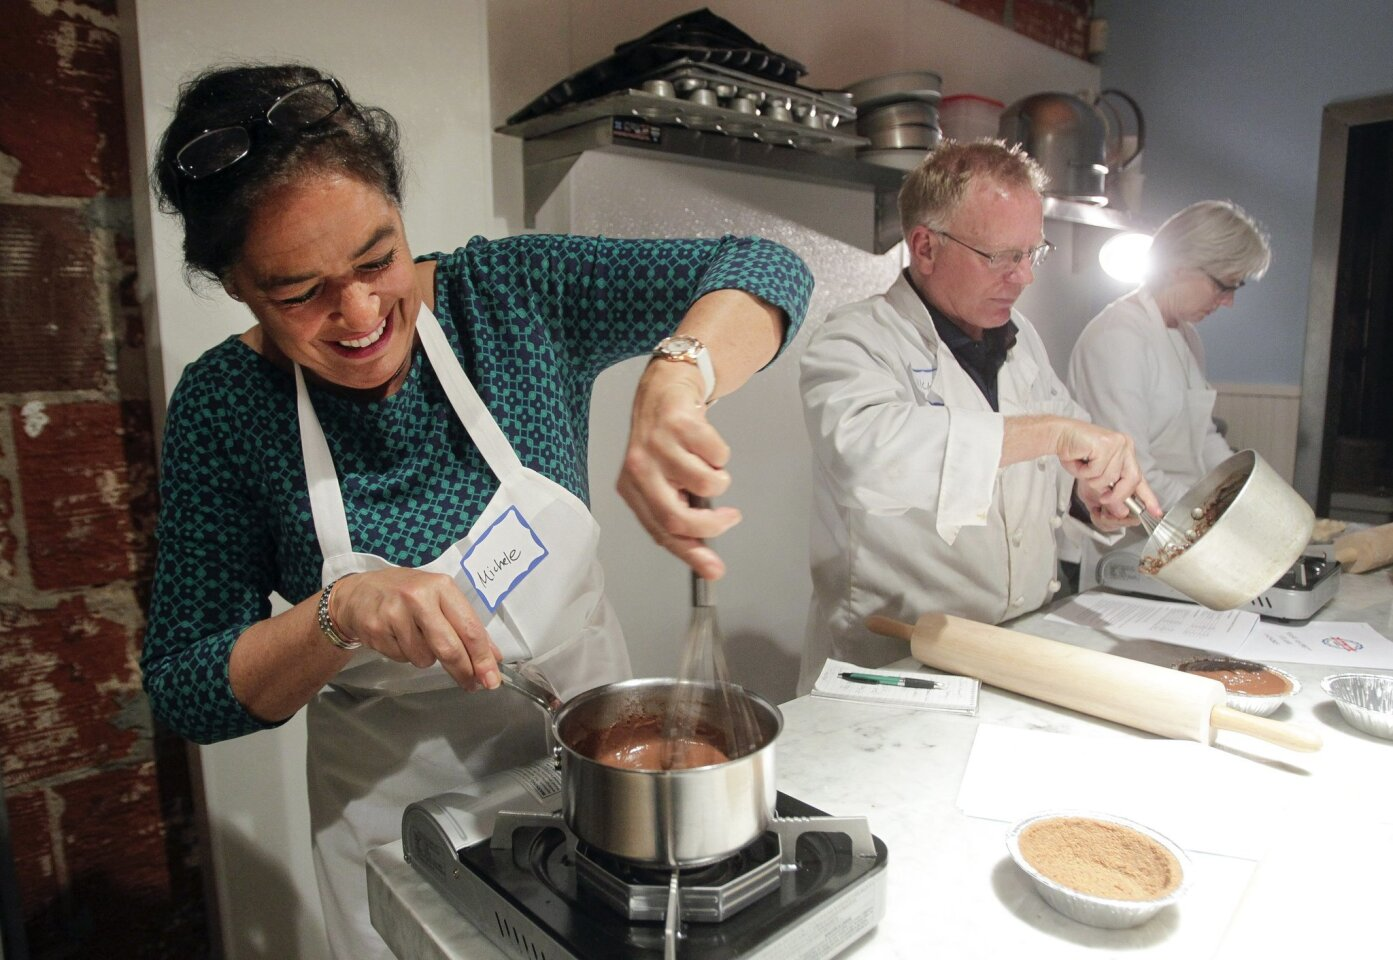 U-T San Diego dining and lifestyle reporter Michele Parente, left, heats up chocolate for chocolate cream pie as she and Nick and Nancy Benson take a pie baking class.